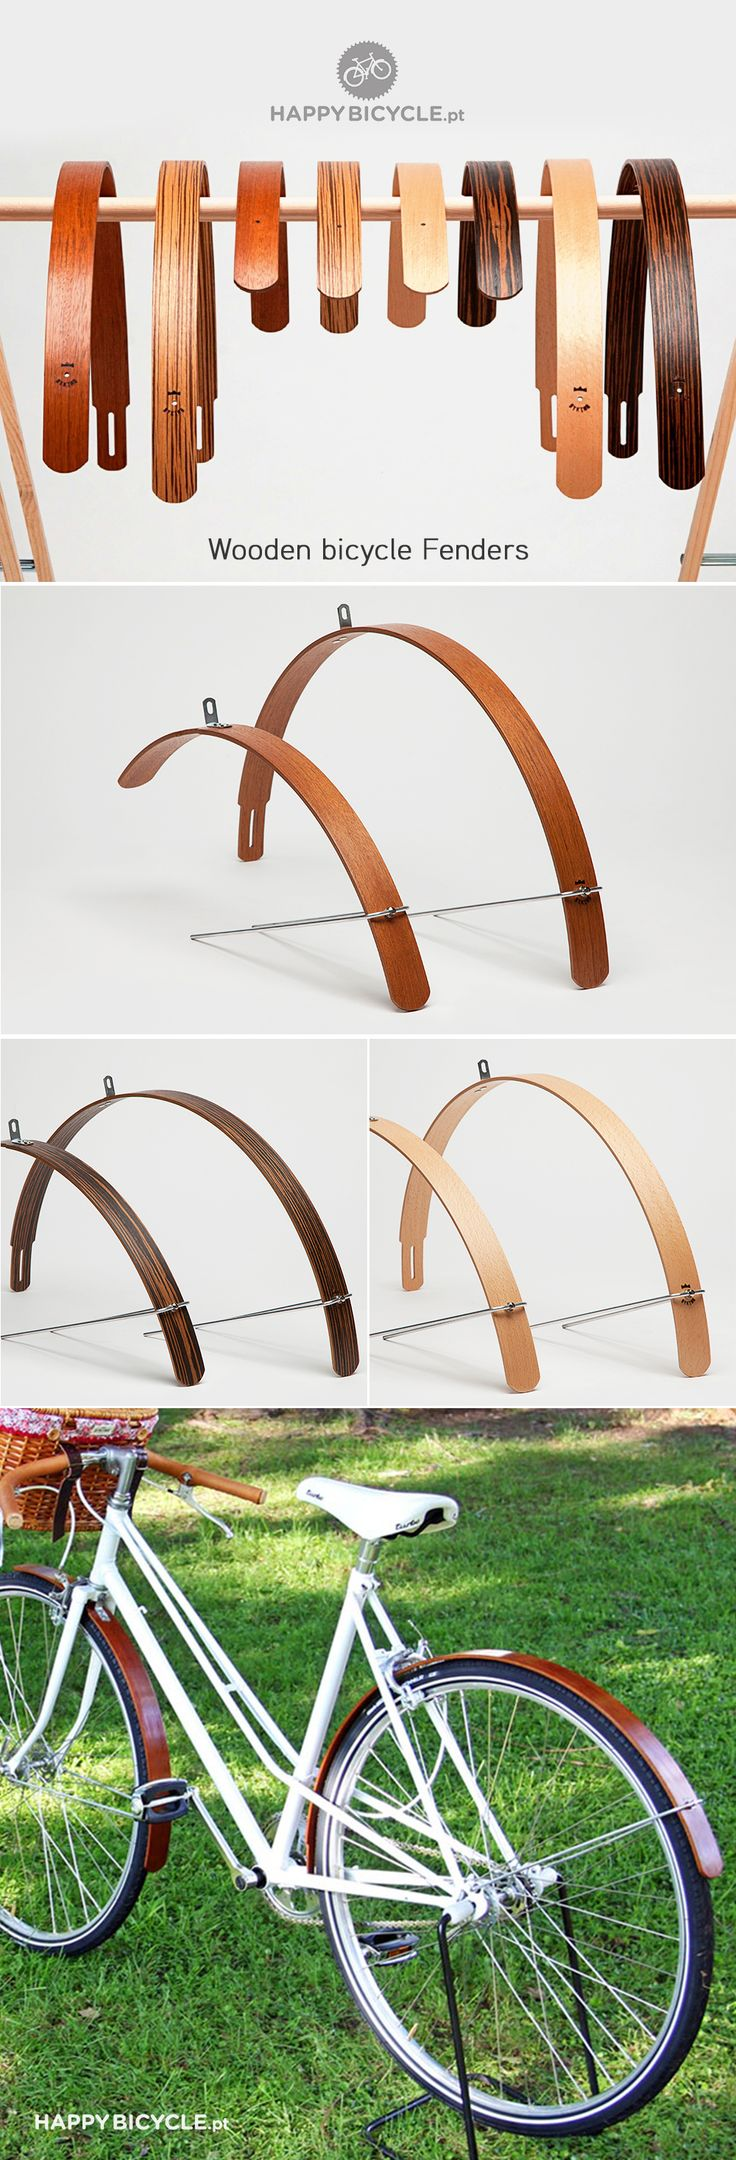 Want These Wooden Bicycle Fenders and this looks just like my City Bicycle / by Happy Bicycle Store. #Beautiful #Bicycle.